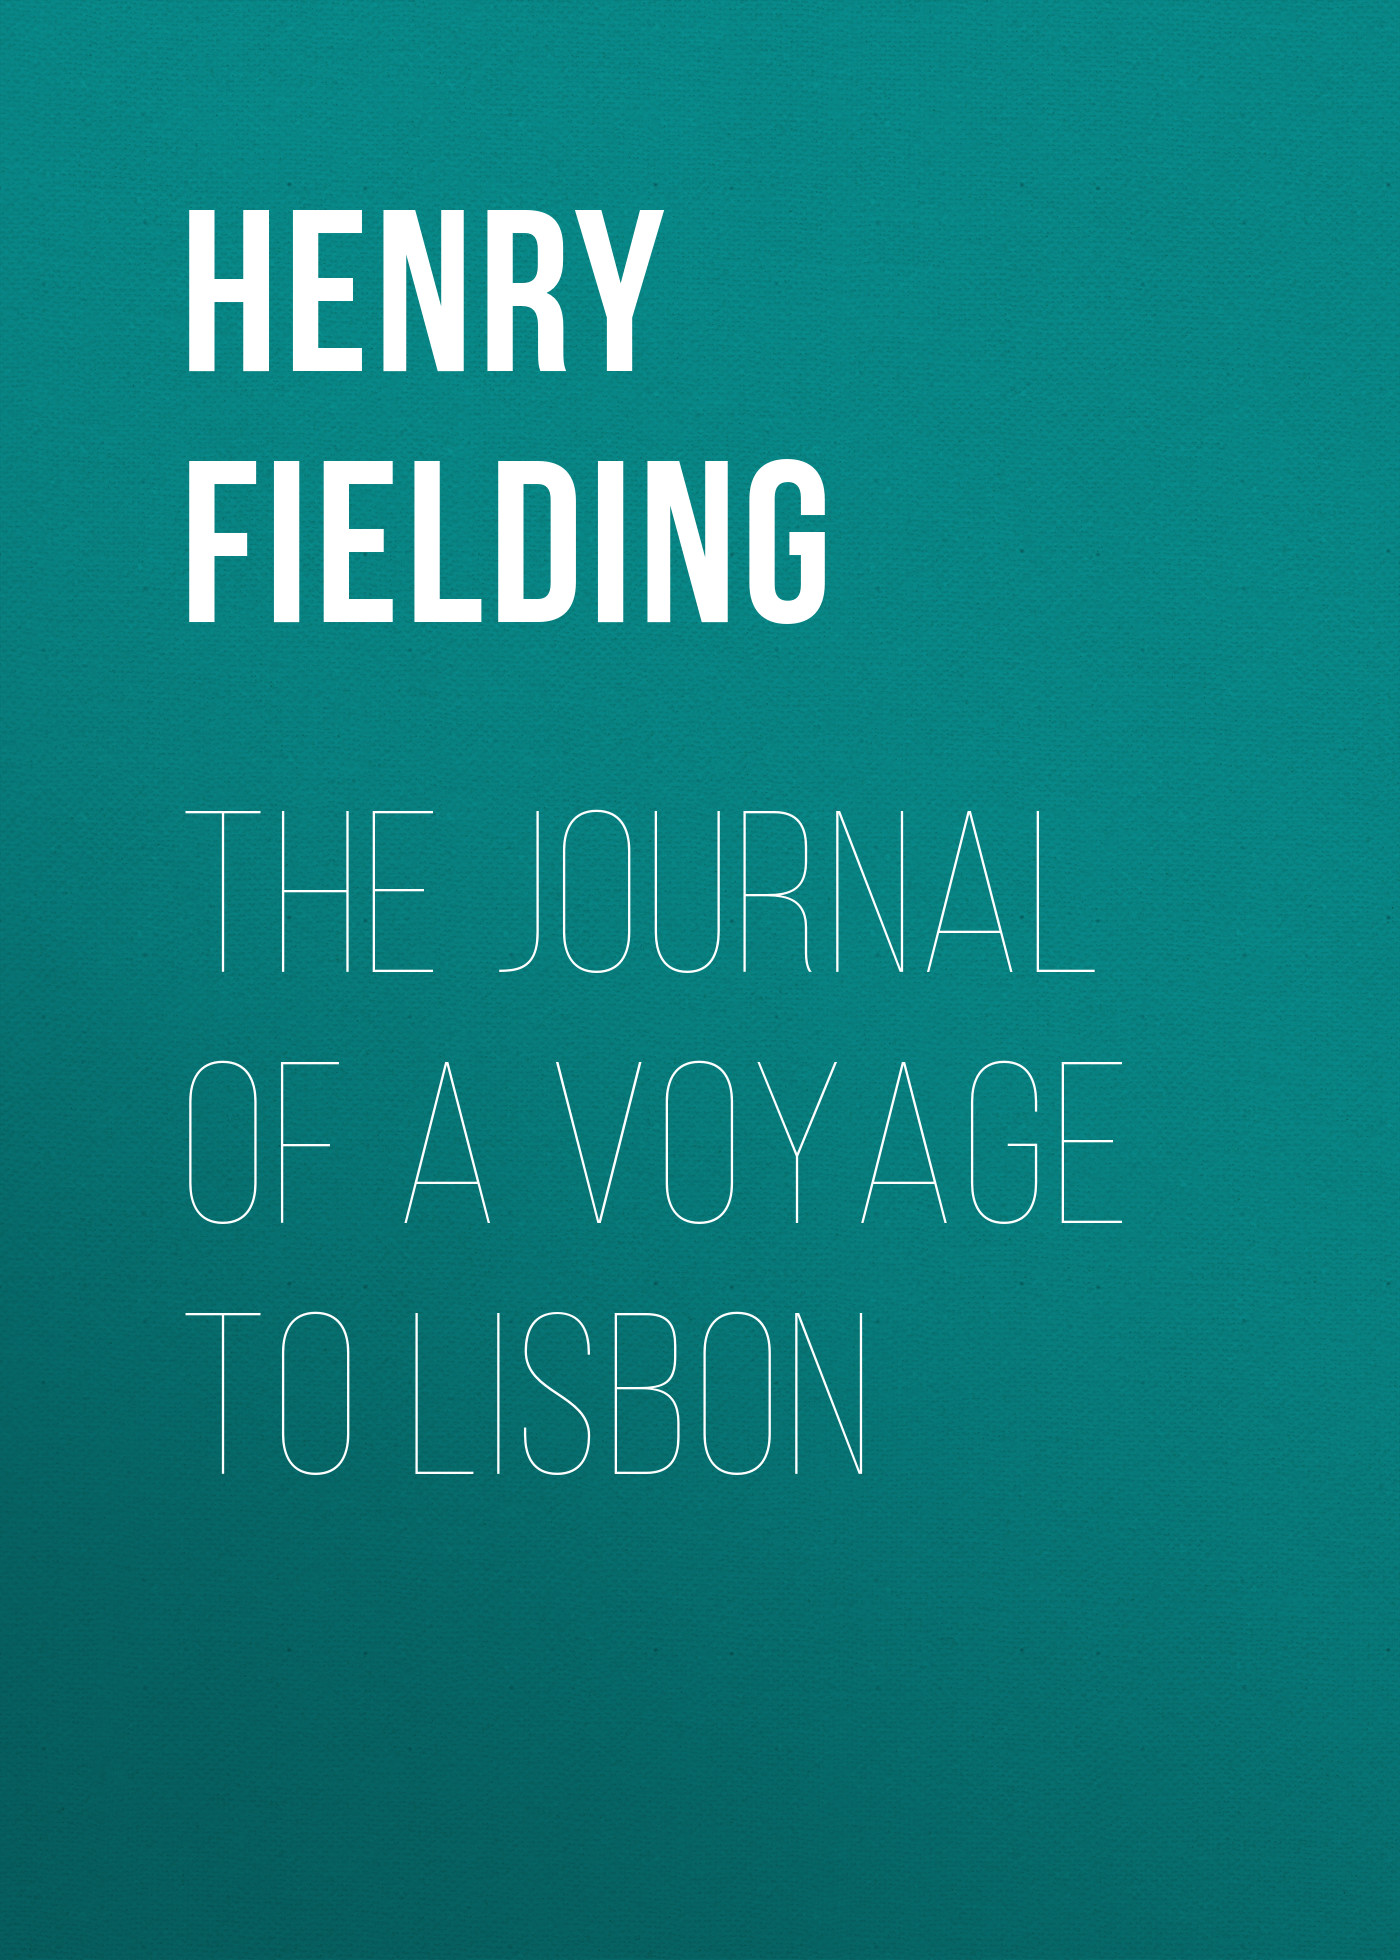 Генри Филдинг The Journal of a Voyage to Lisbon mercier р night train to lisbon